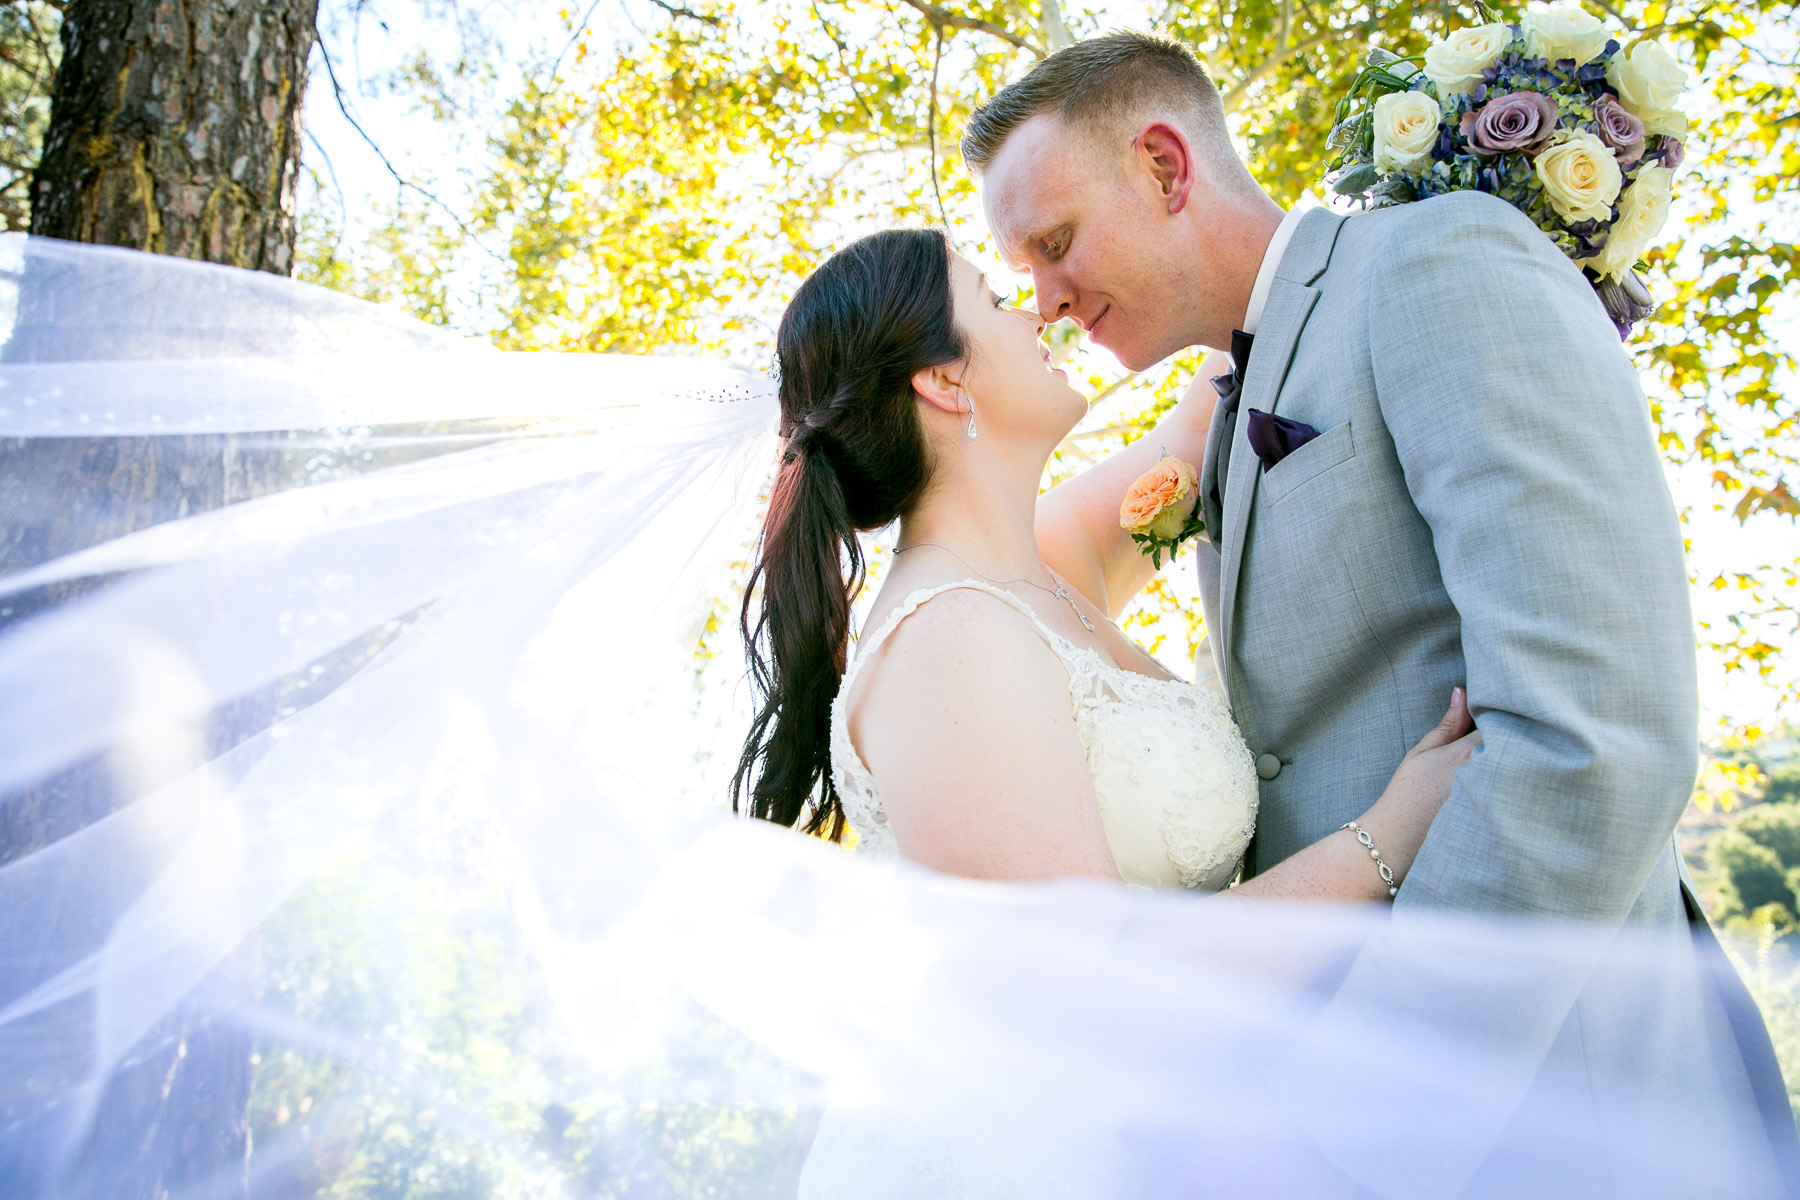 romantic pose bride and groom wedding at dove canyon rancho santa margarita wedding